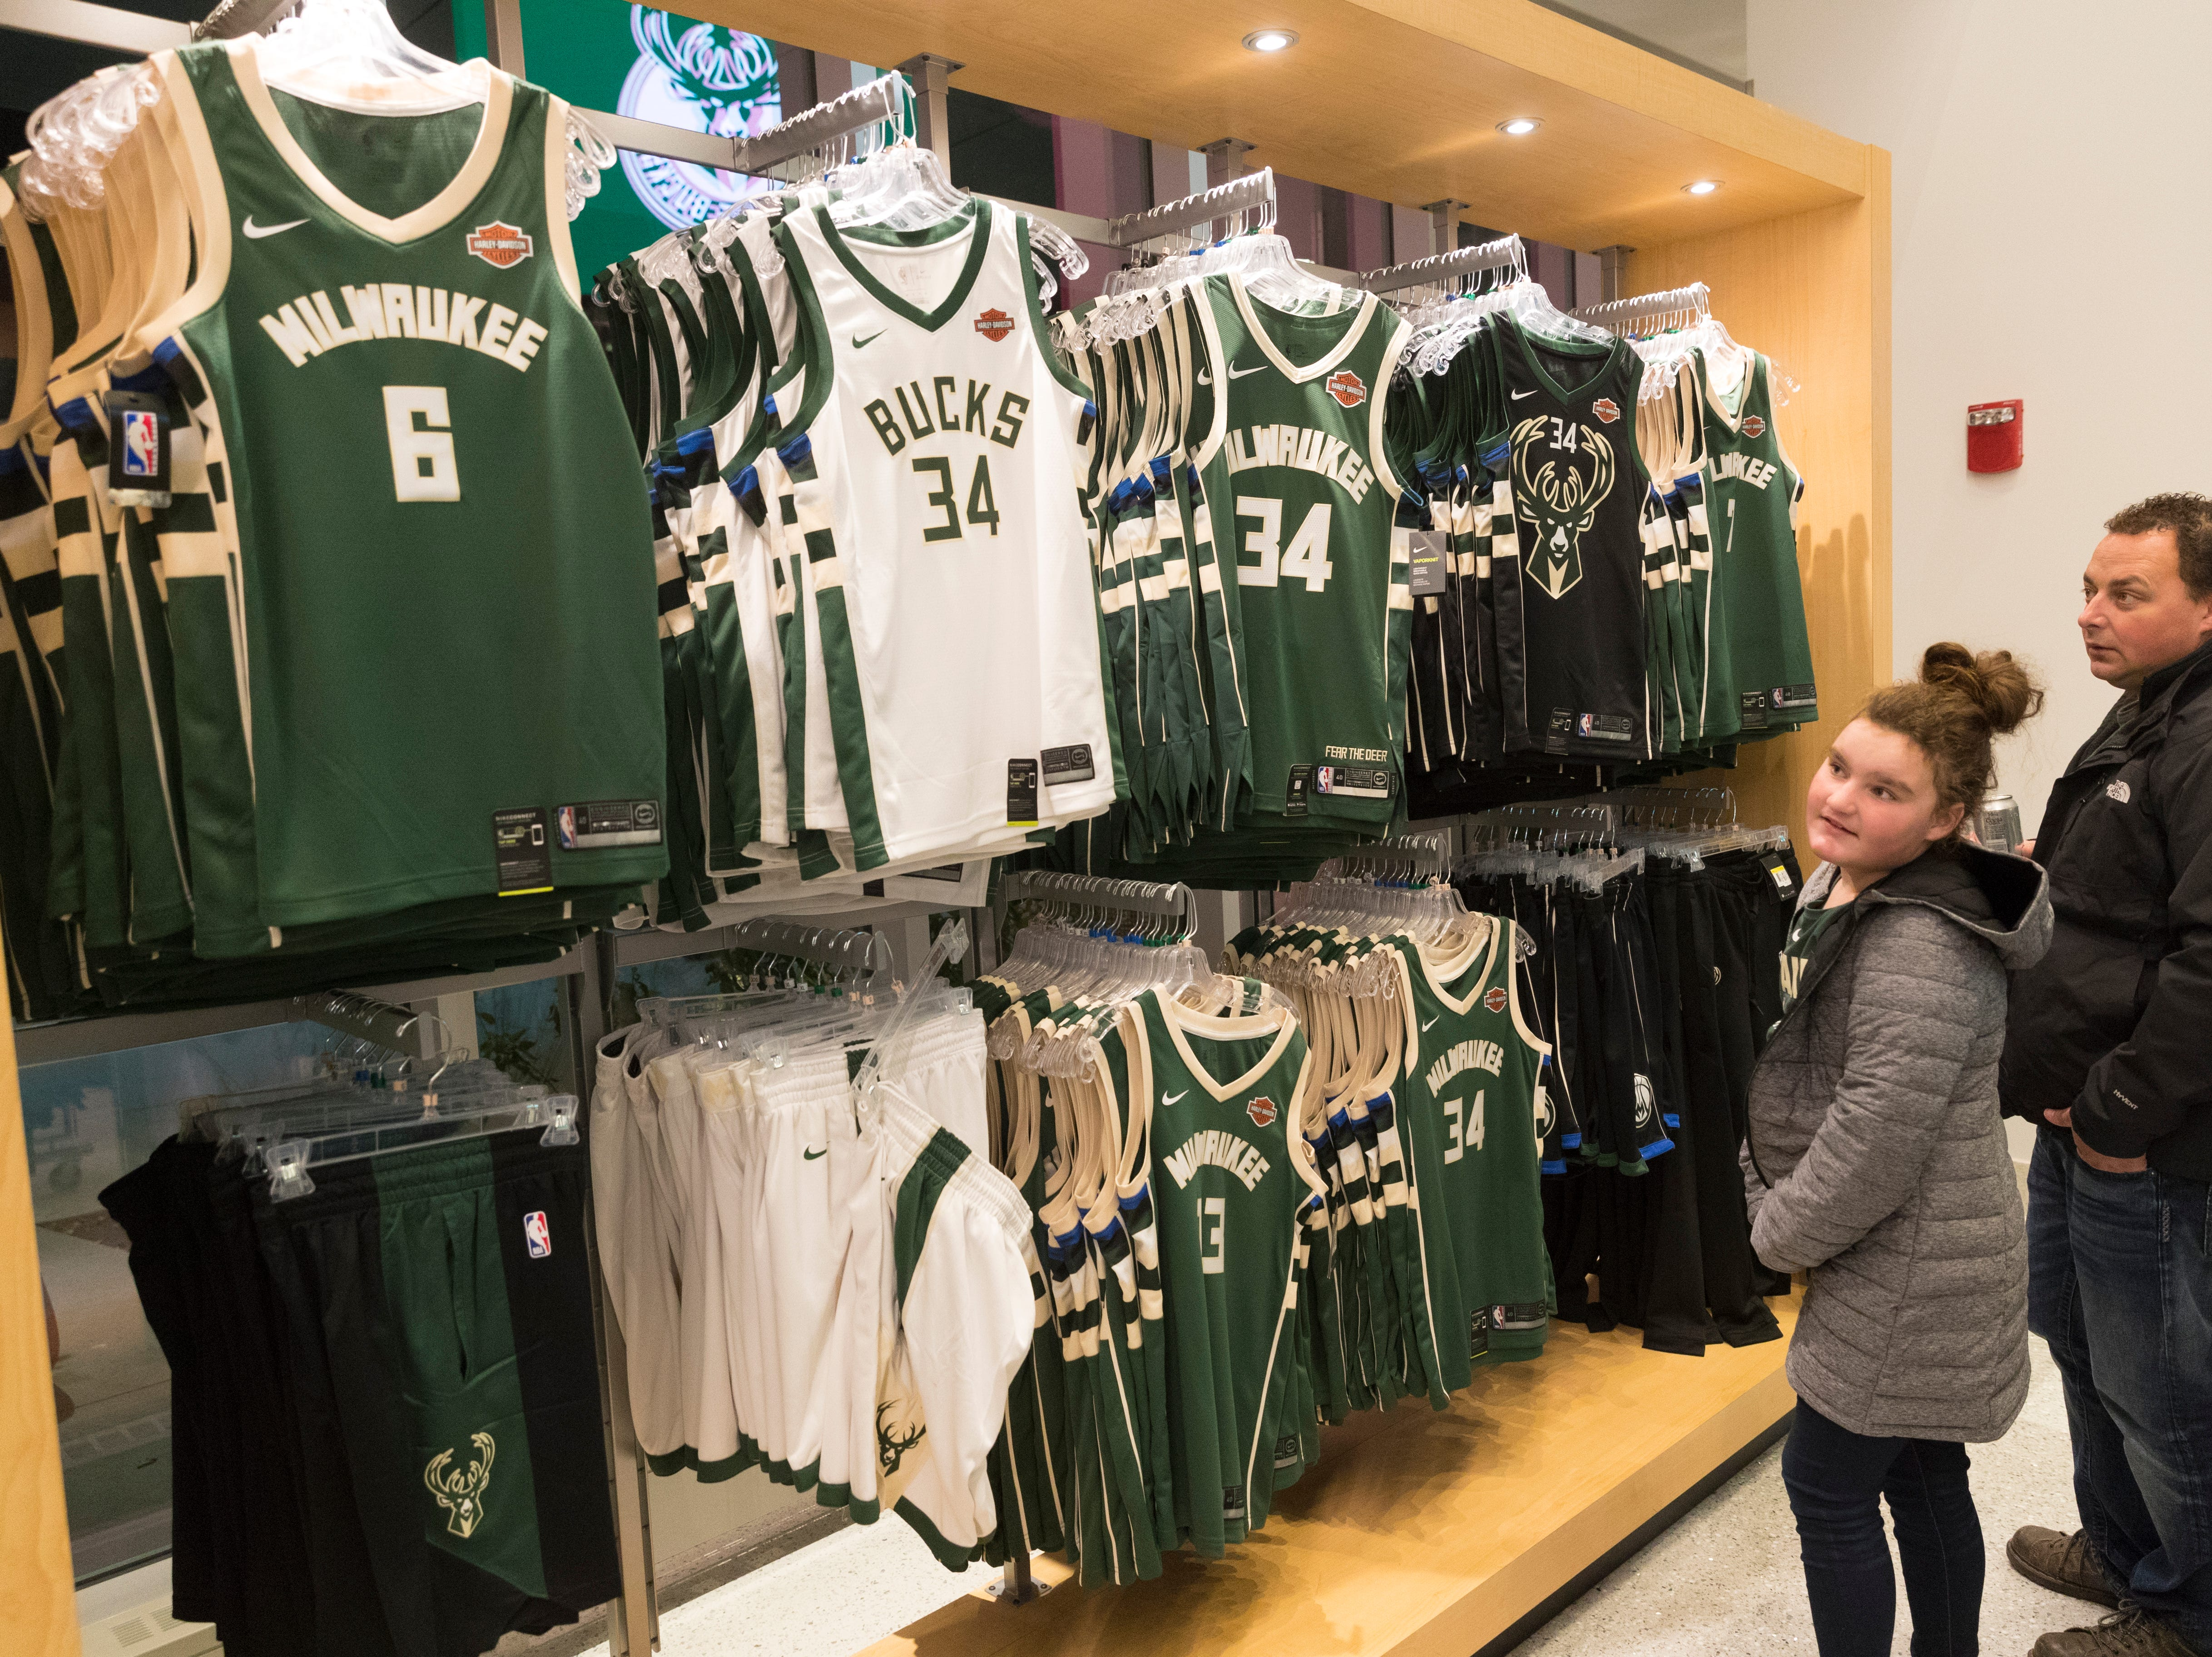 Milwaukee Bucks ownership considers the  Bucks Pro Shop an expansion of their brand.